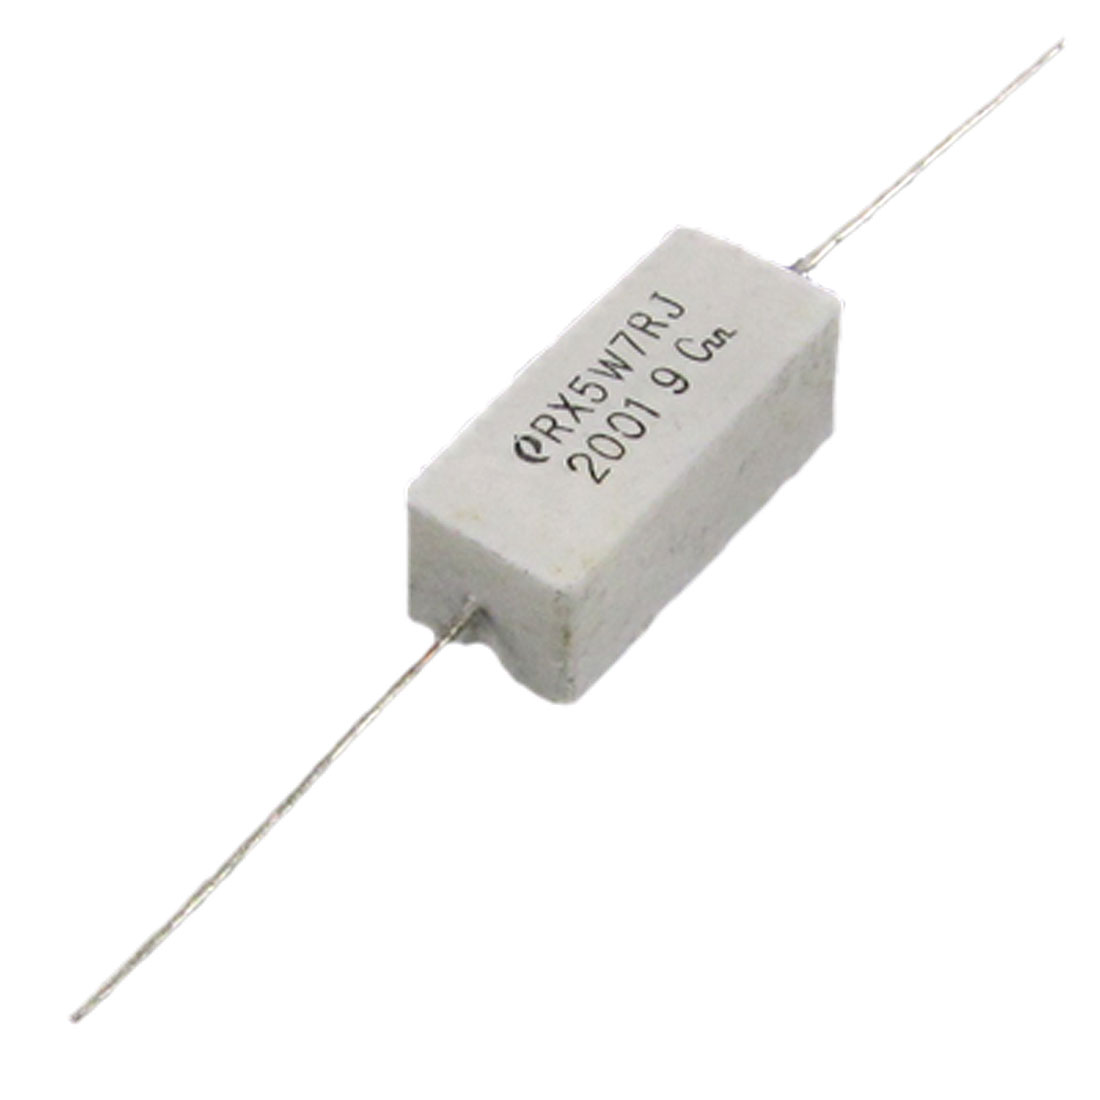 10 Pcs Wire Wound Ceramic Cement Power Resistor 7 Ohm 5W 5%